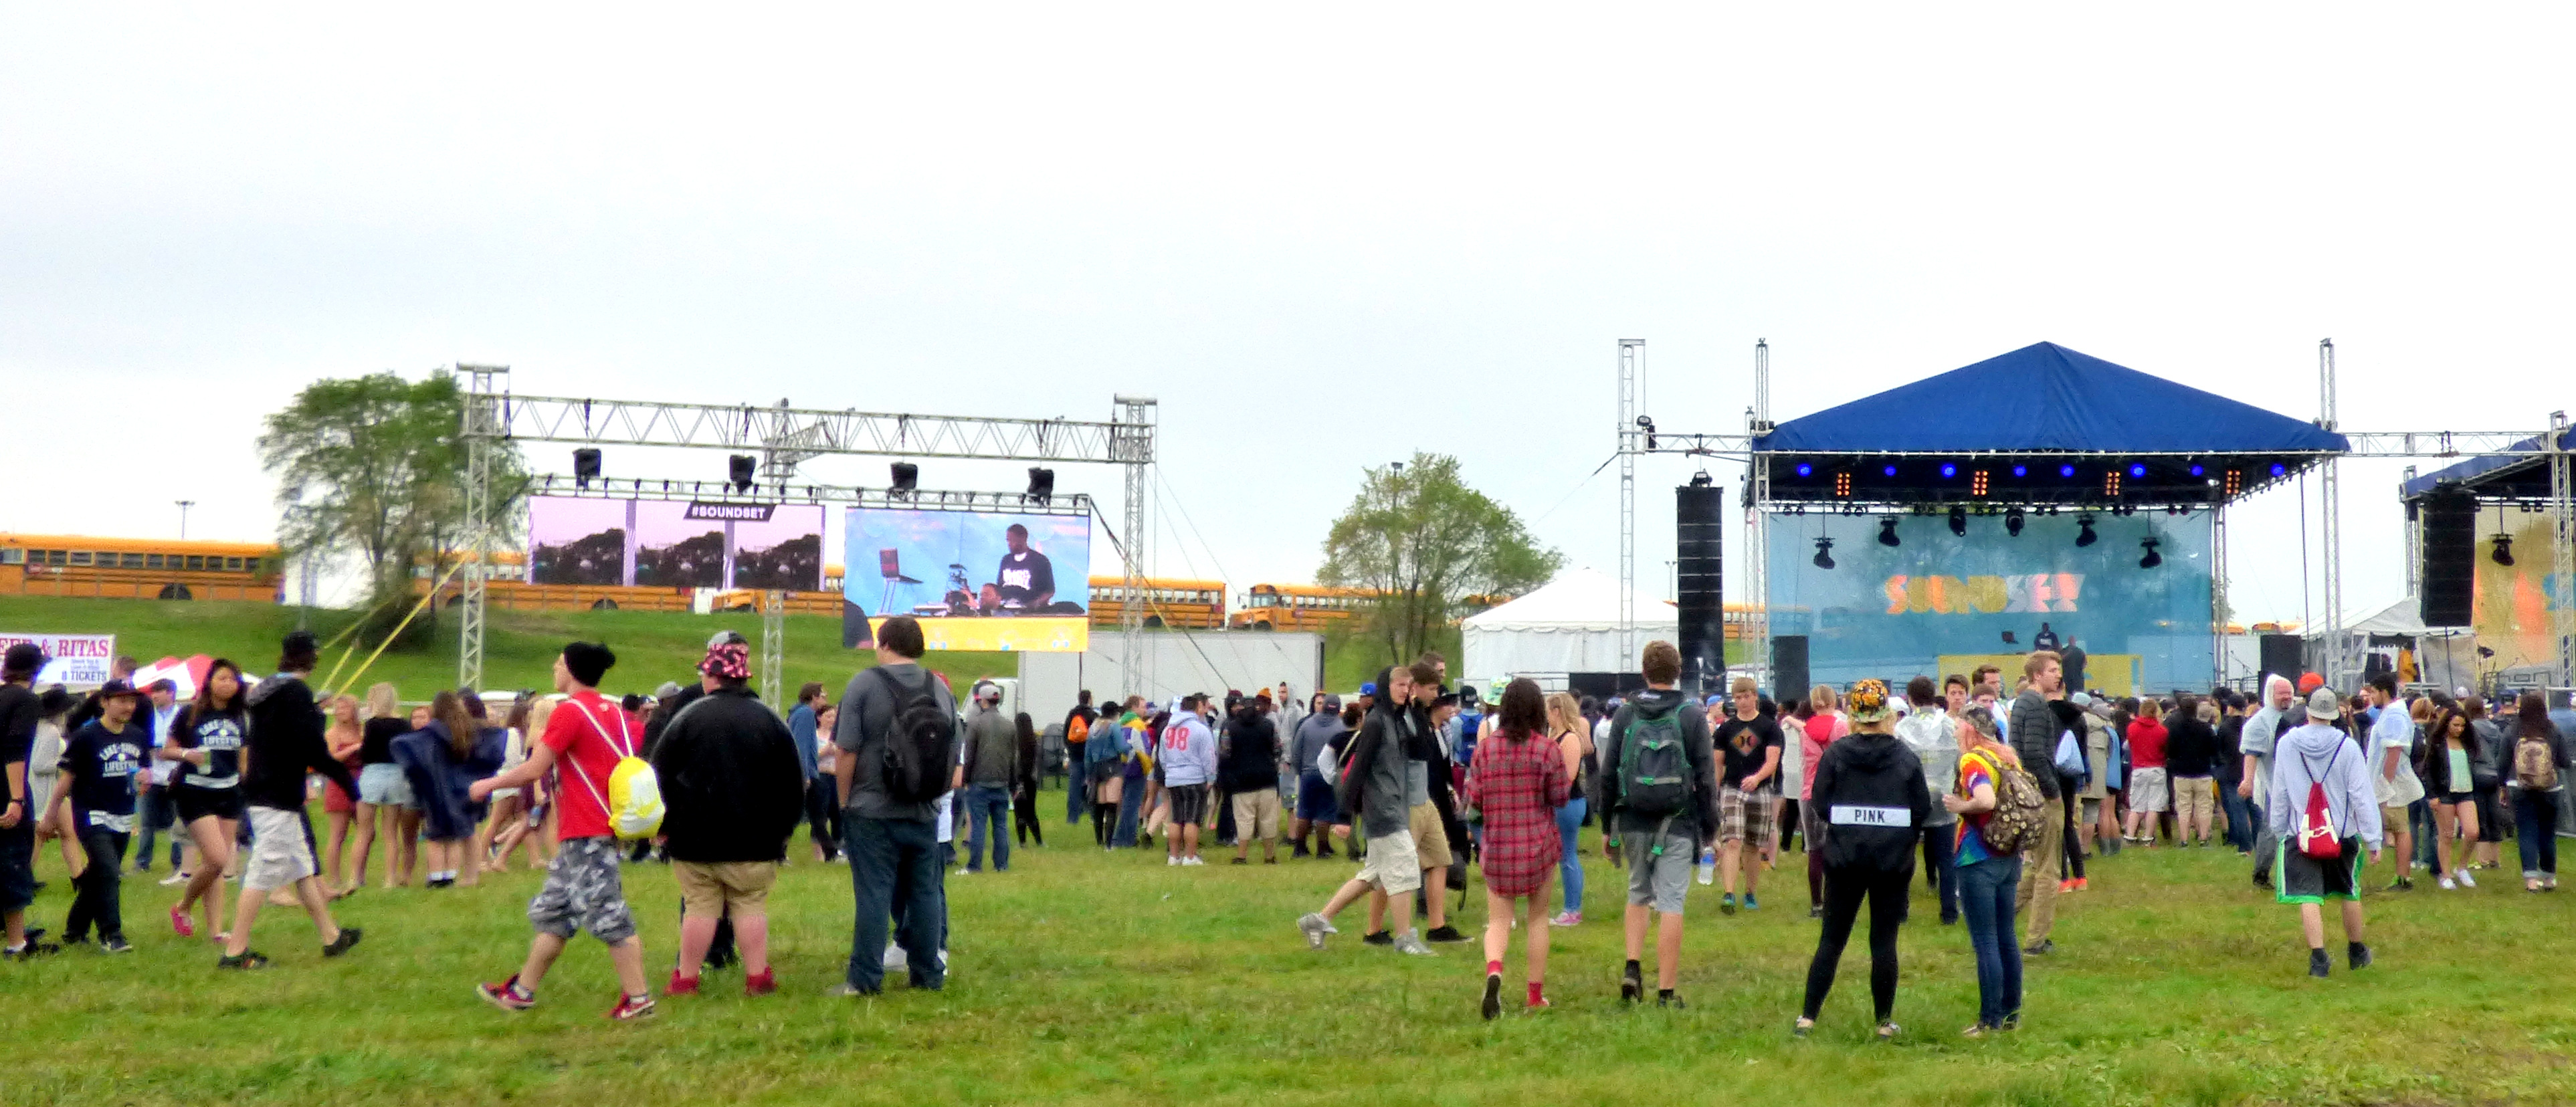 Soundset Crowd (Minnesota Connected)